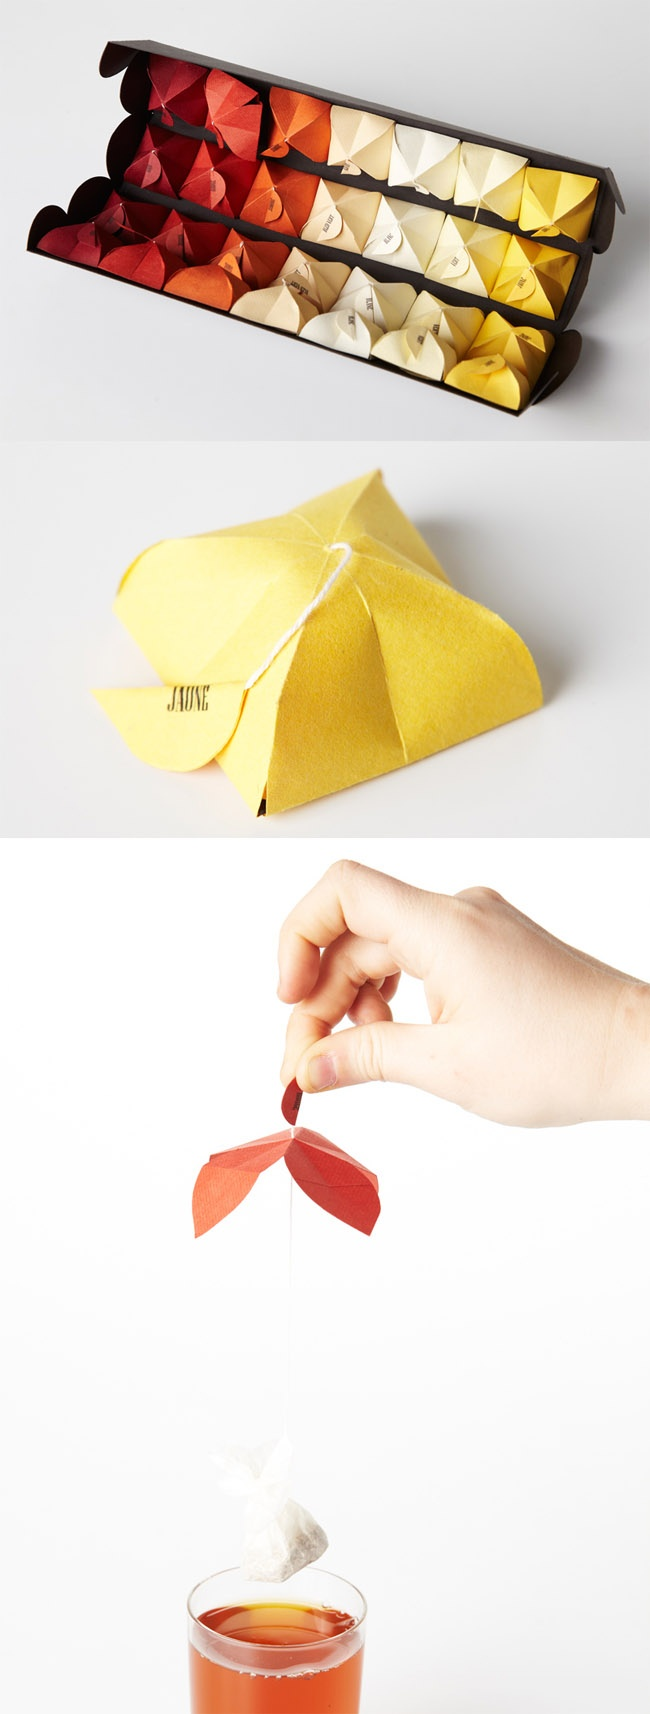 Origami Tea Packaging /  Maria Milagros Rodriguez Bouroncle: Tea Packaging, Helicopters Teas, Bags Carrier, Milagros Rodriguez, Origami Teas, Beautiful Origami, Teas Packaging, Teas Bags, Teas Coffee Salad Pl